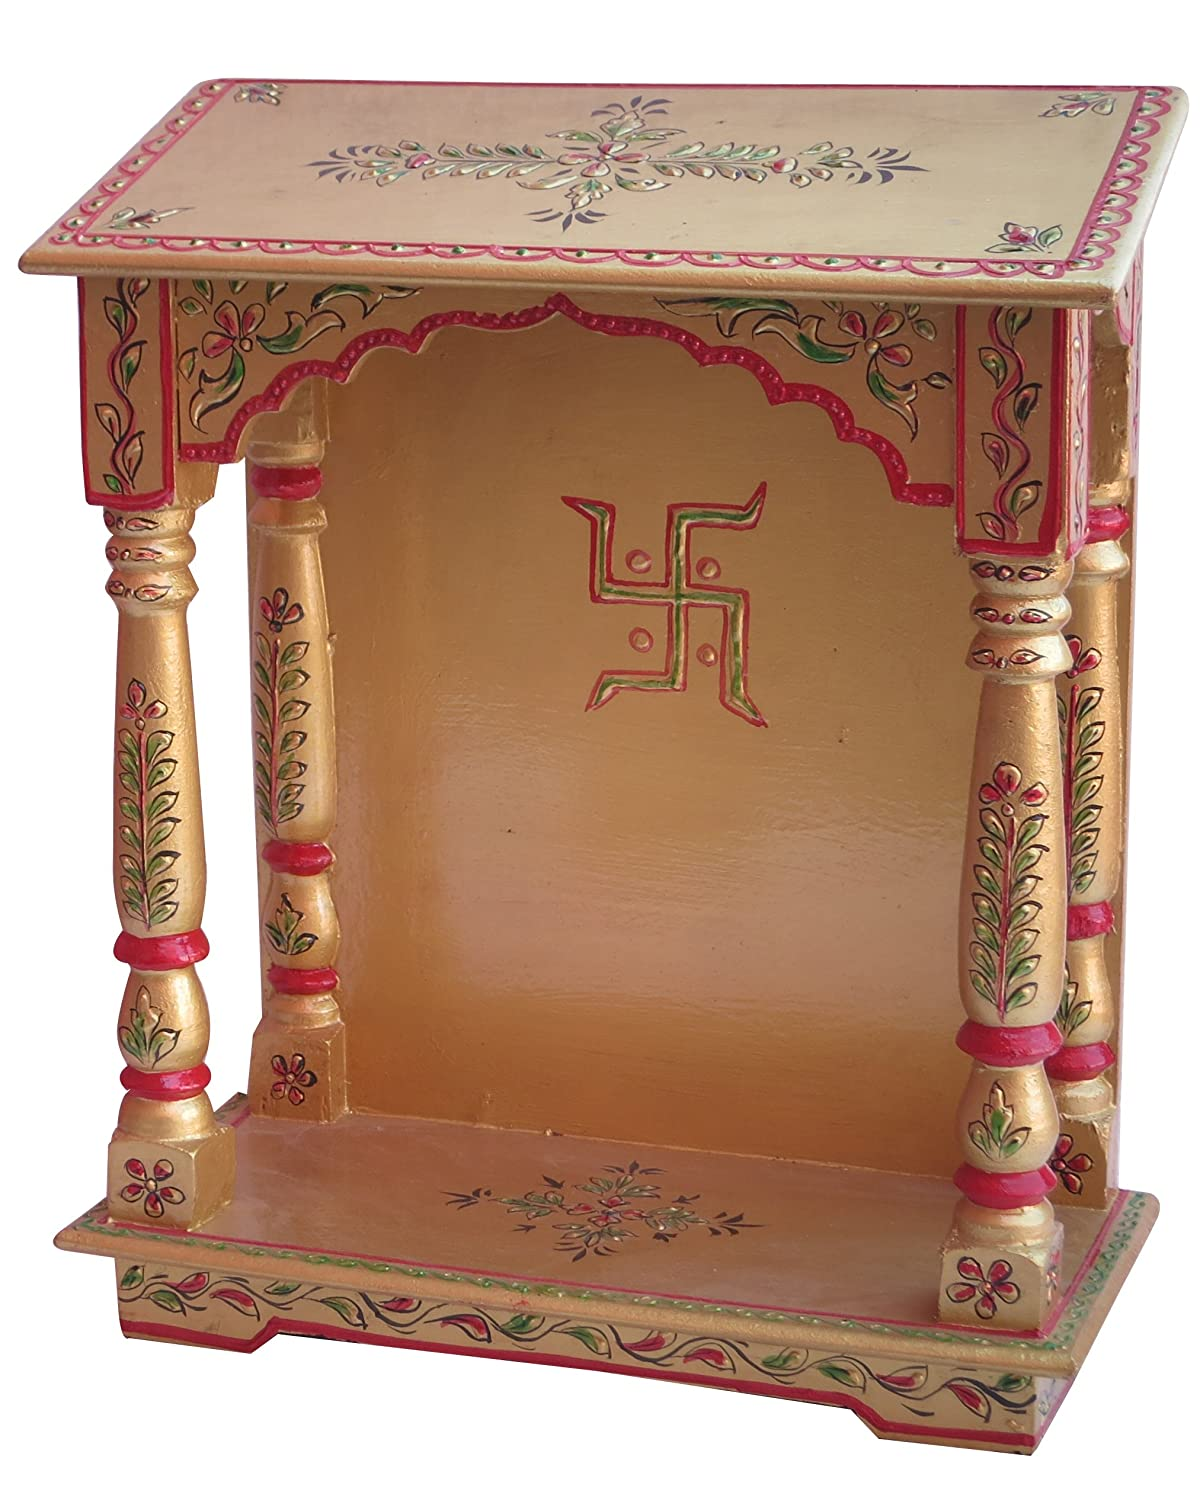 Wood Temple Puja Mandir Temple For Home Pooja Mandir Pooja Mandir For Home With Swastika Made With Wood And With Decorative Art Golden Work